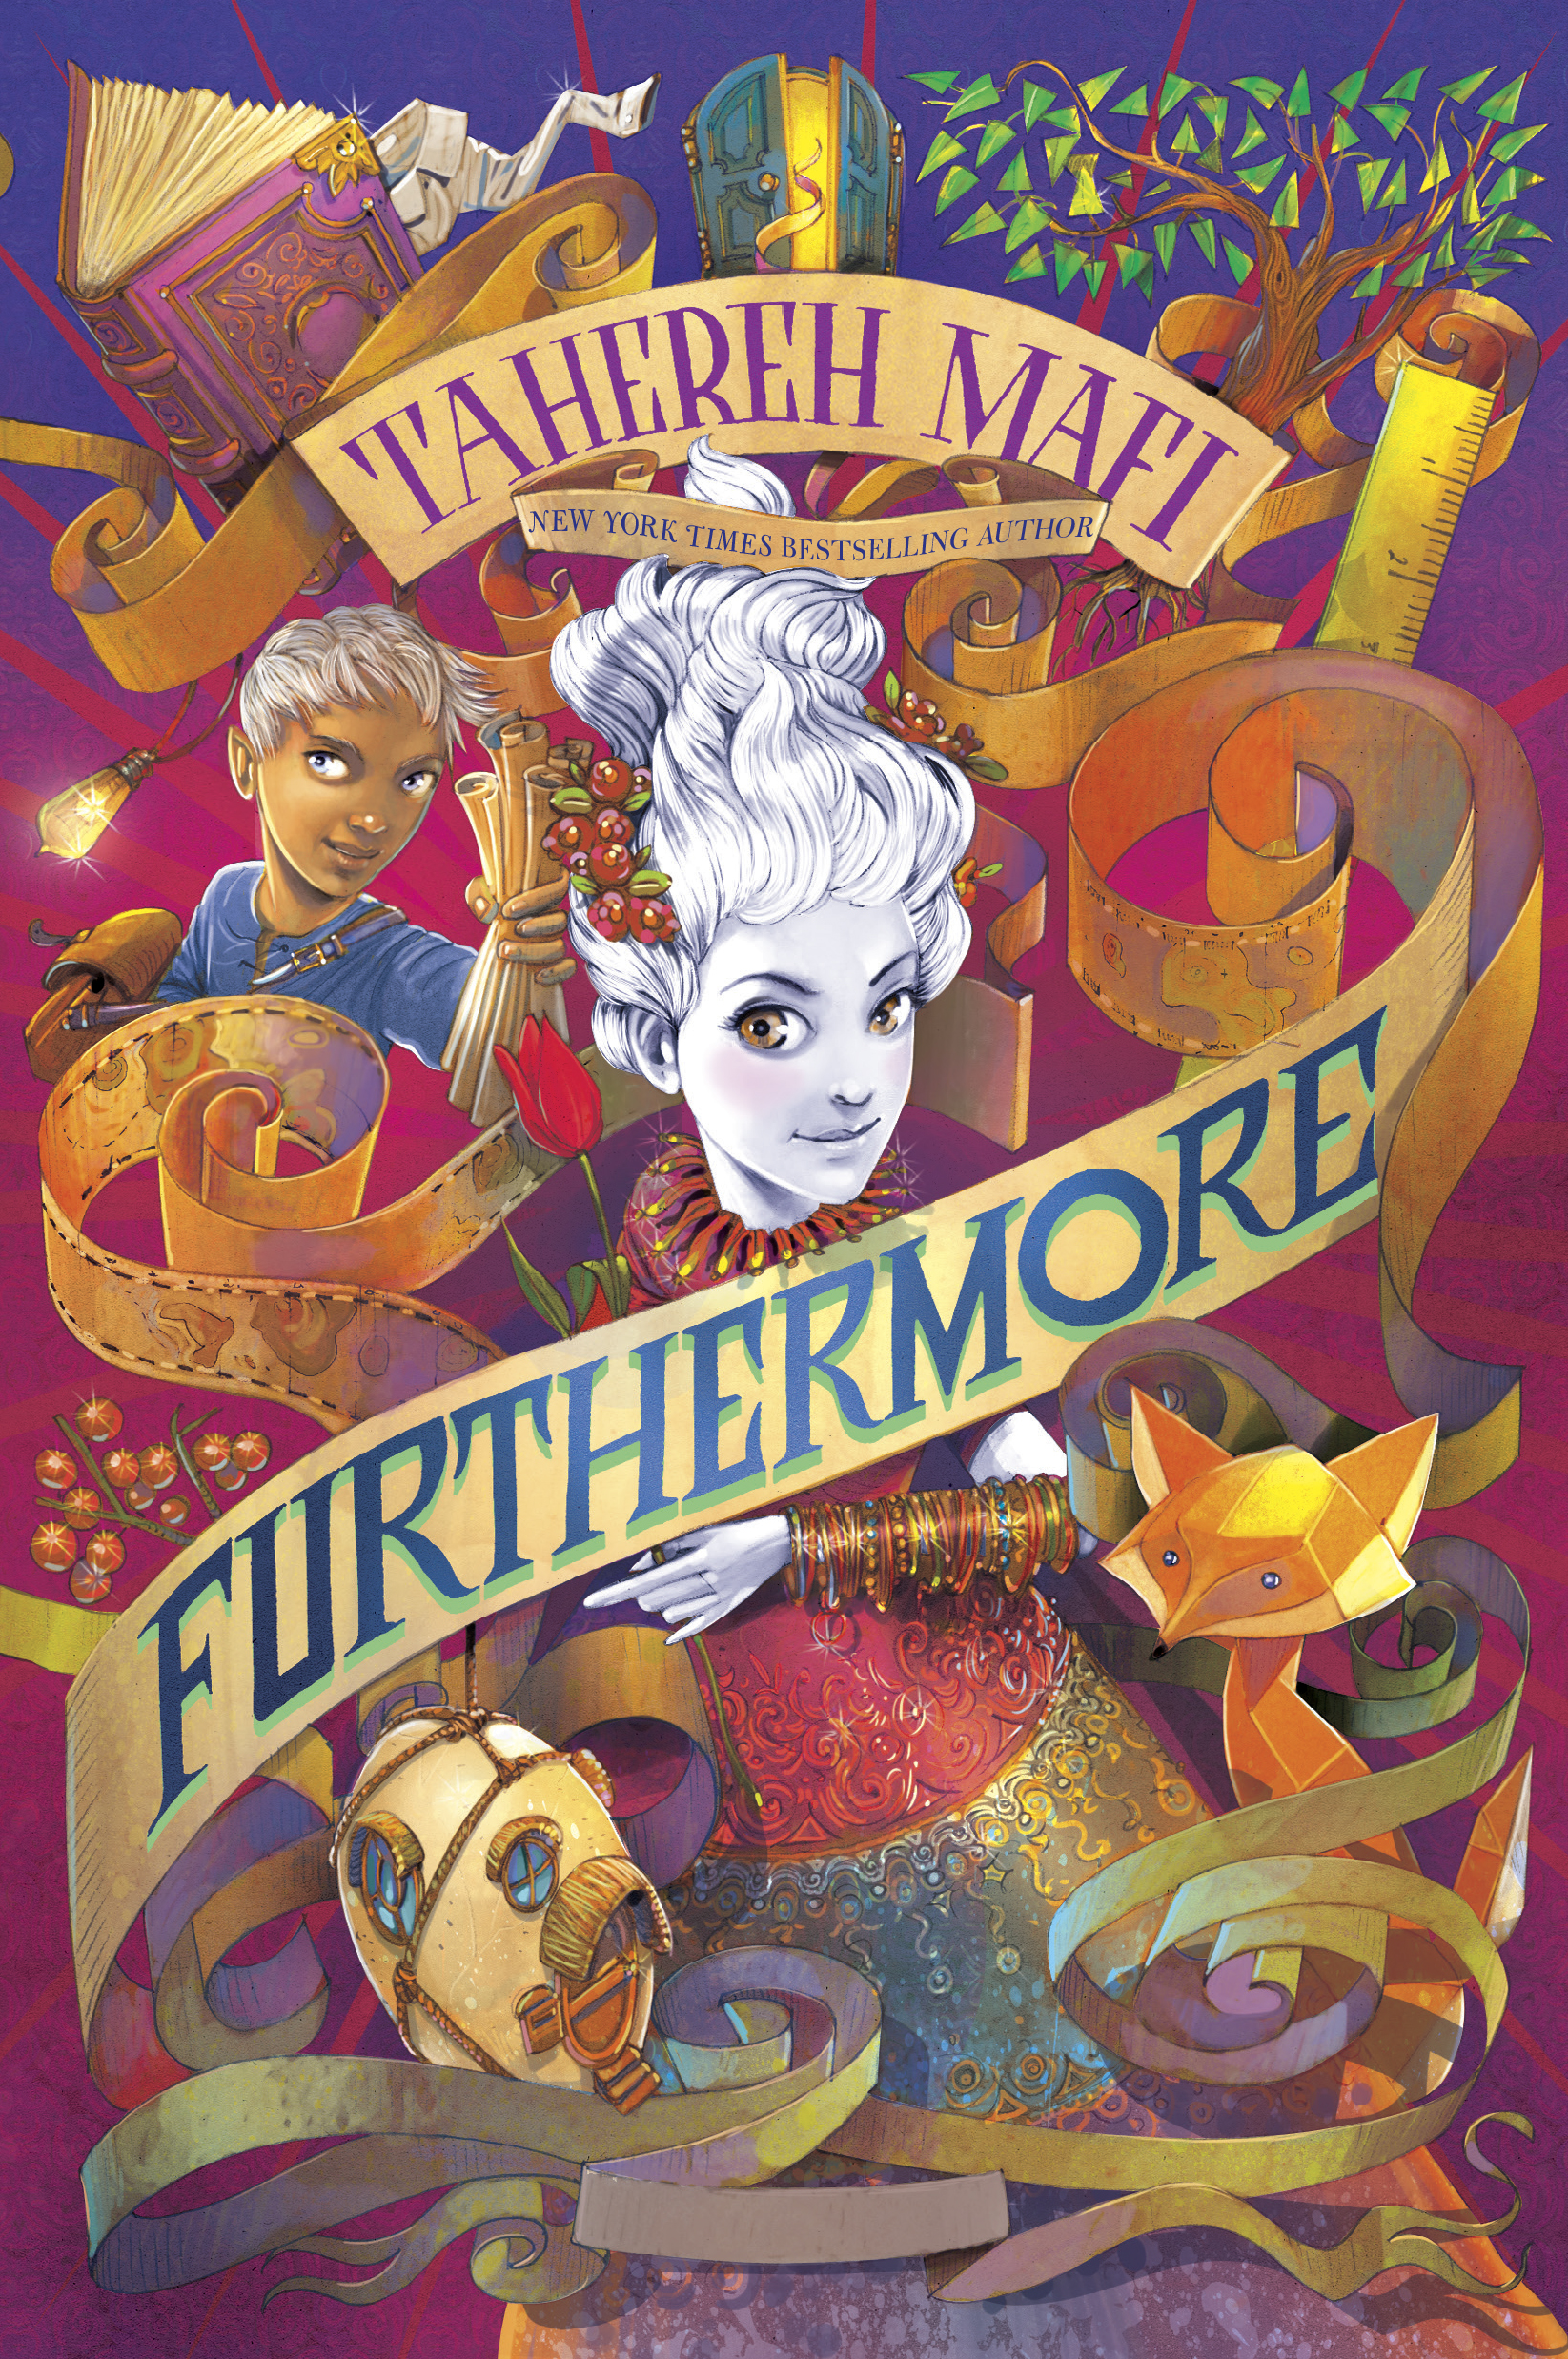 FURTHERMORE-cover-final-Jan-7-2016 (1)